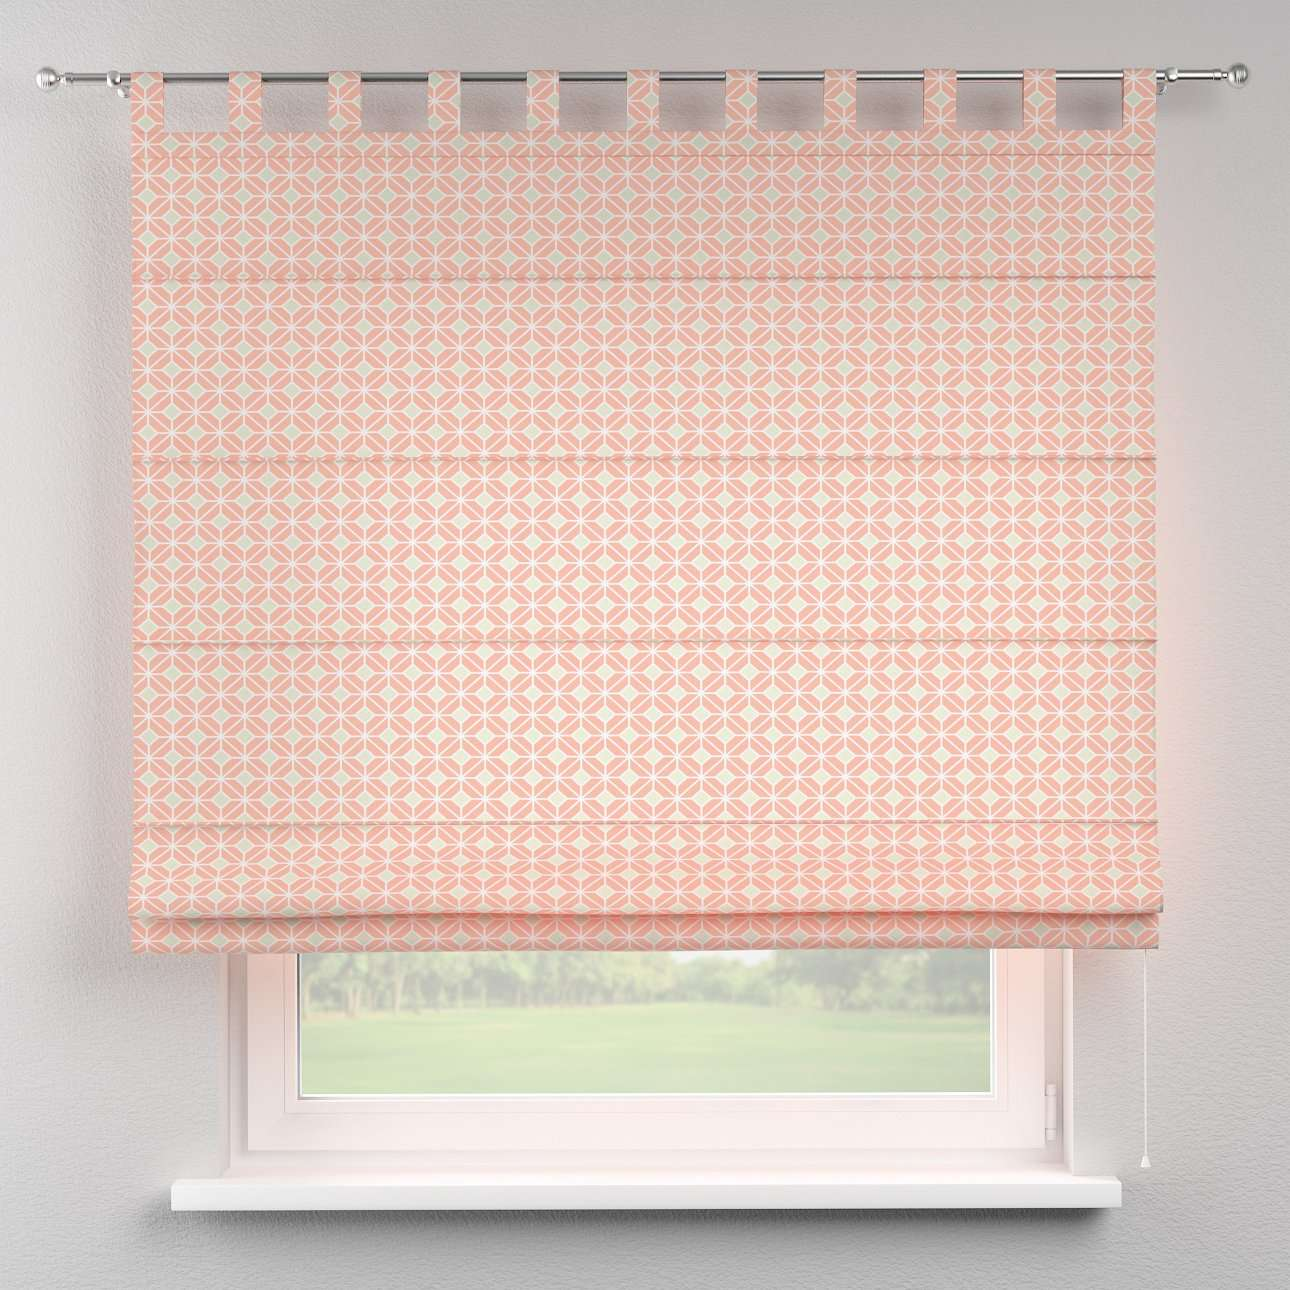 Verona tab top roman blind in collection Geometric, fabric: 141-48